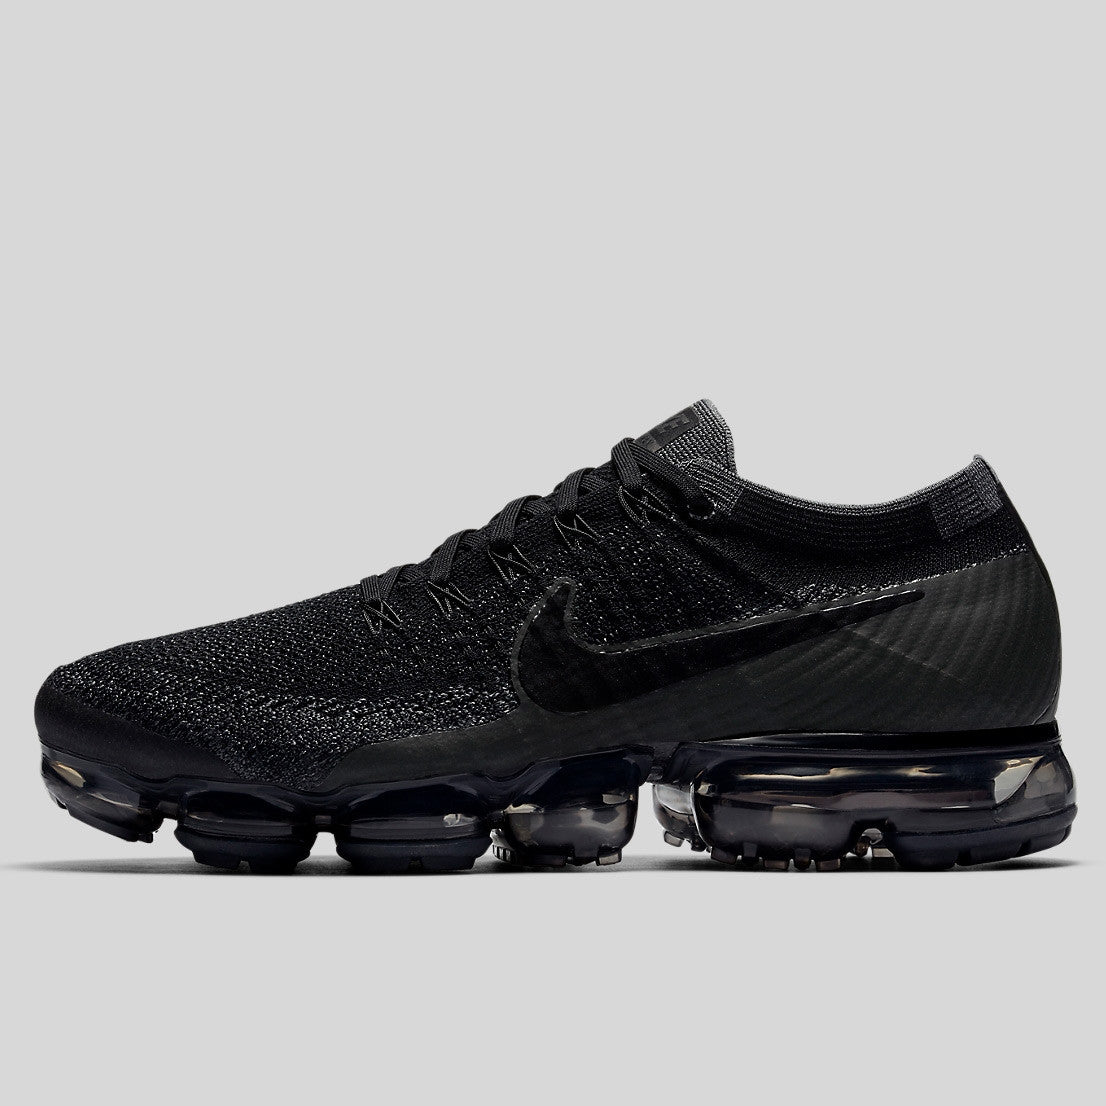 2982c7a4e86e Nike Air Vapormax Flyknit Triple Black (849558-007)